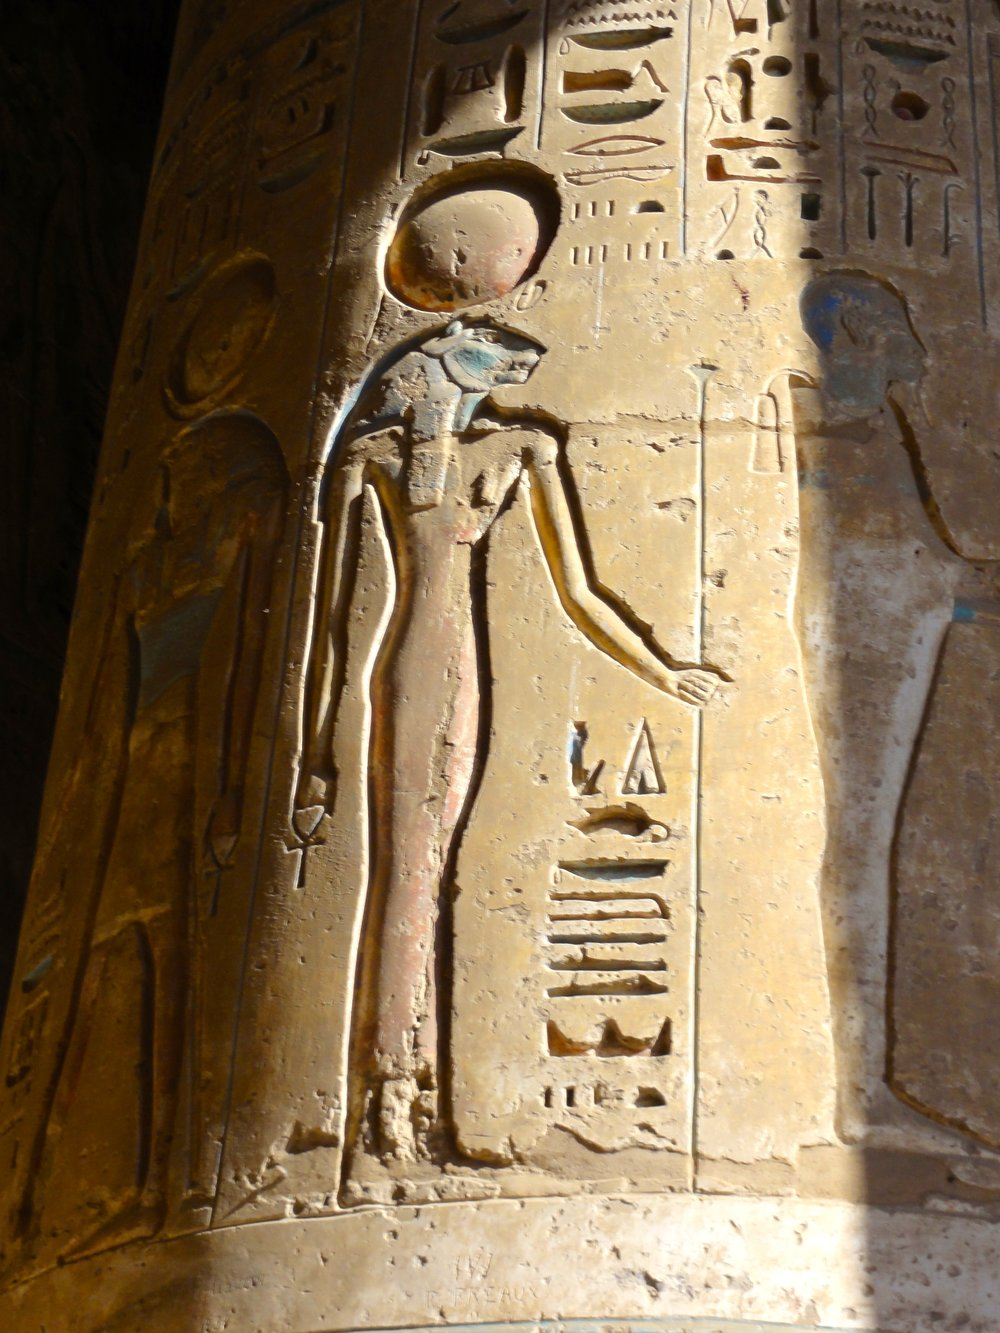 Sekhmet and Ptah reliefs on the columns